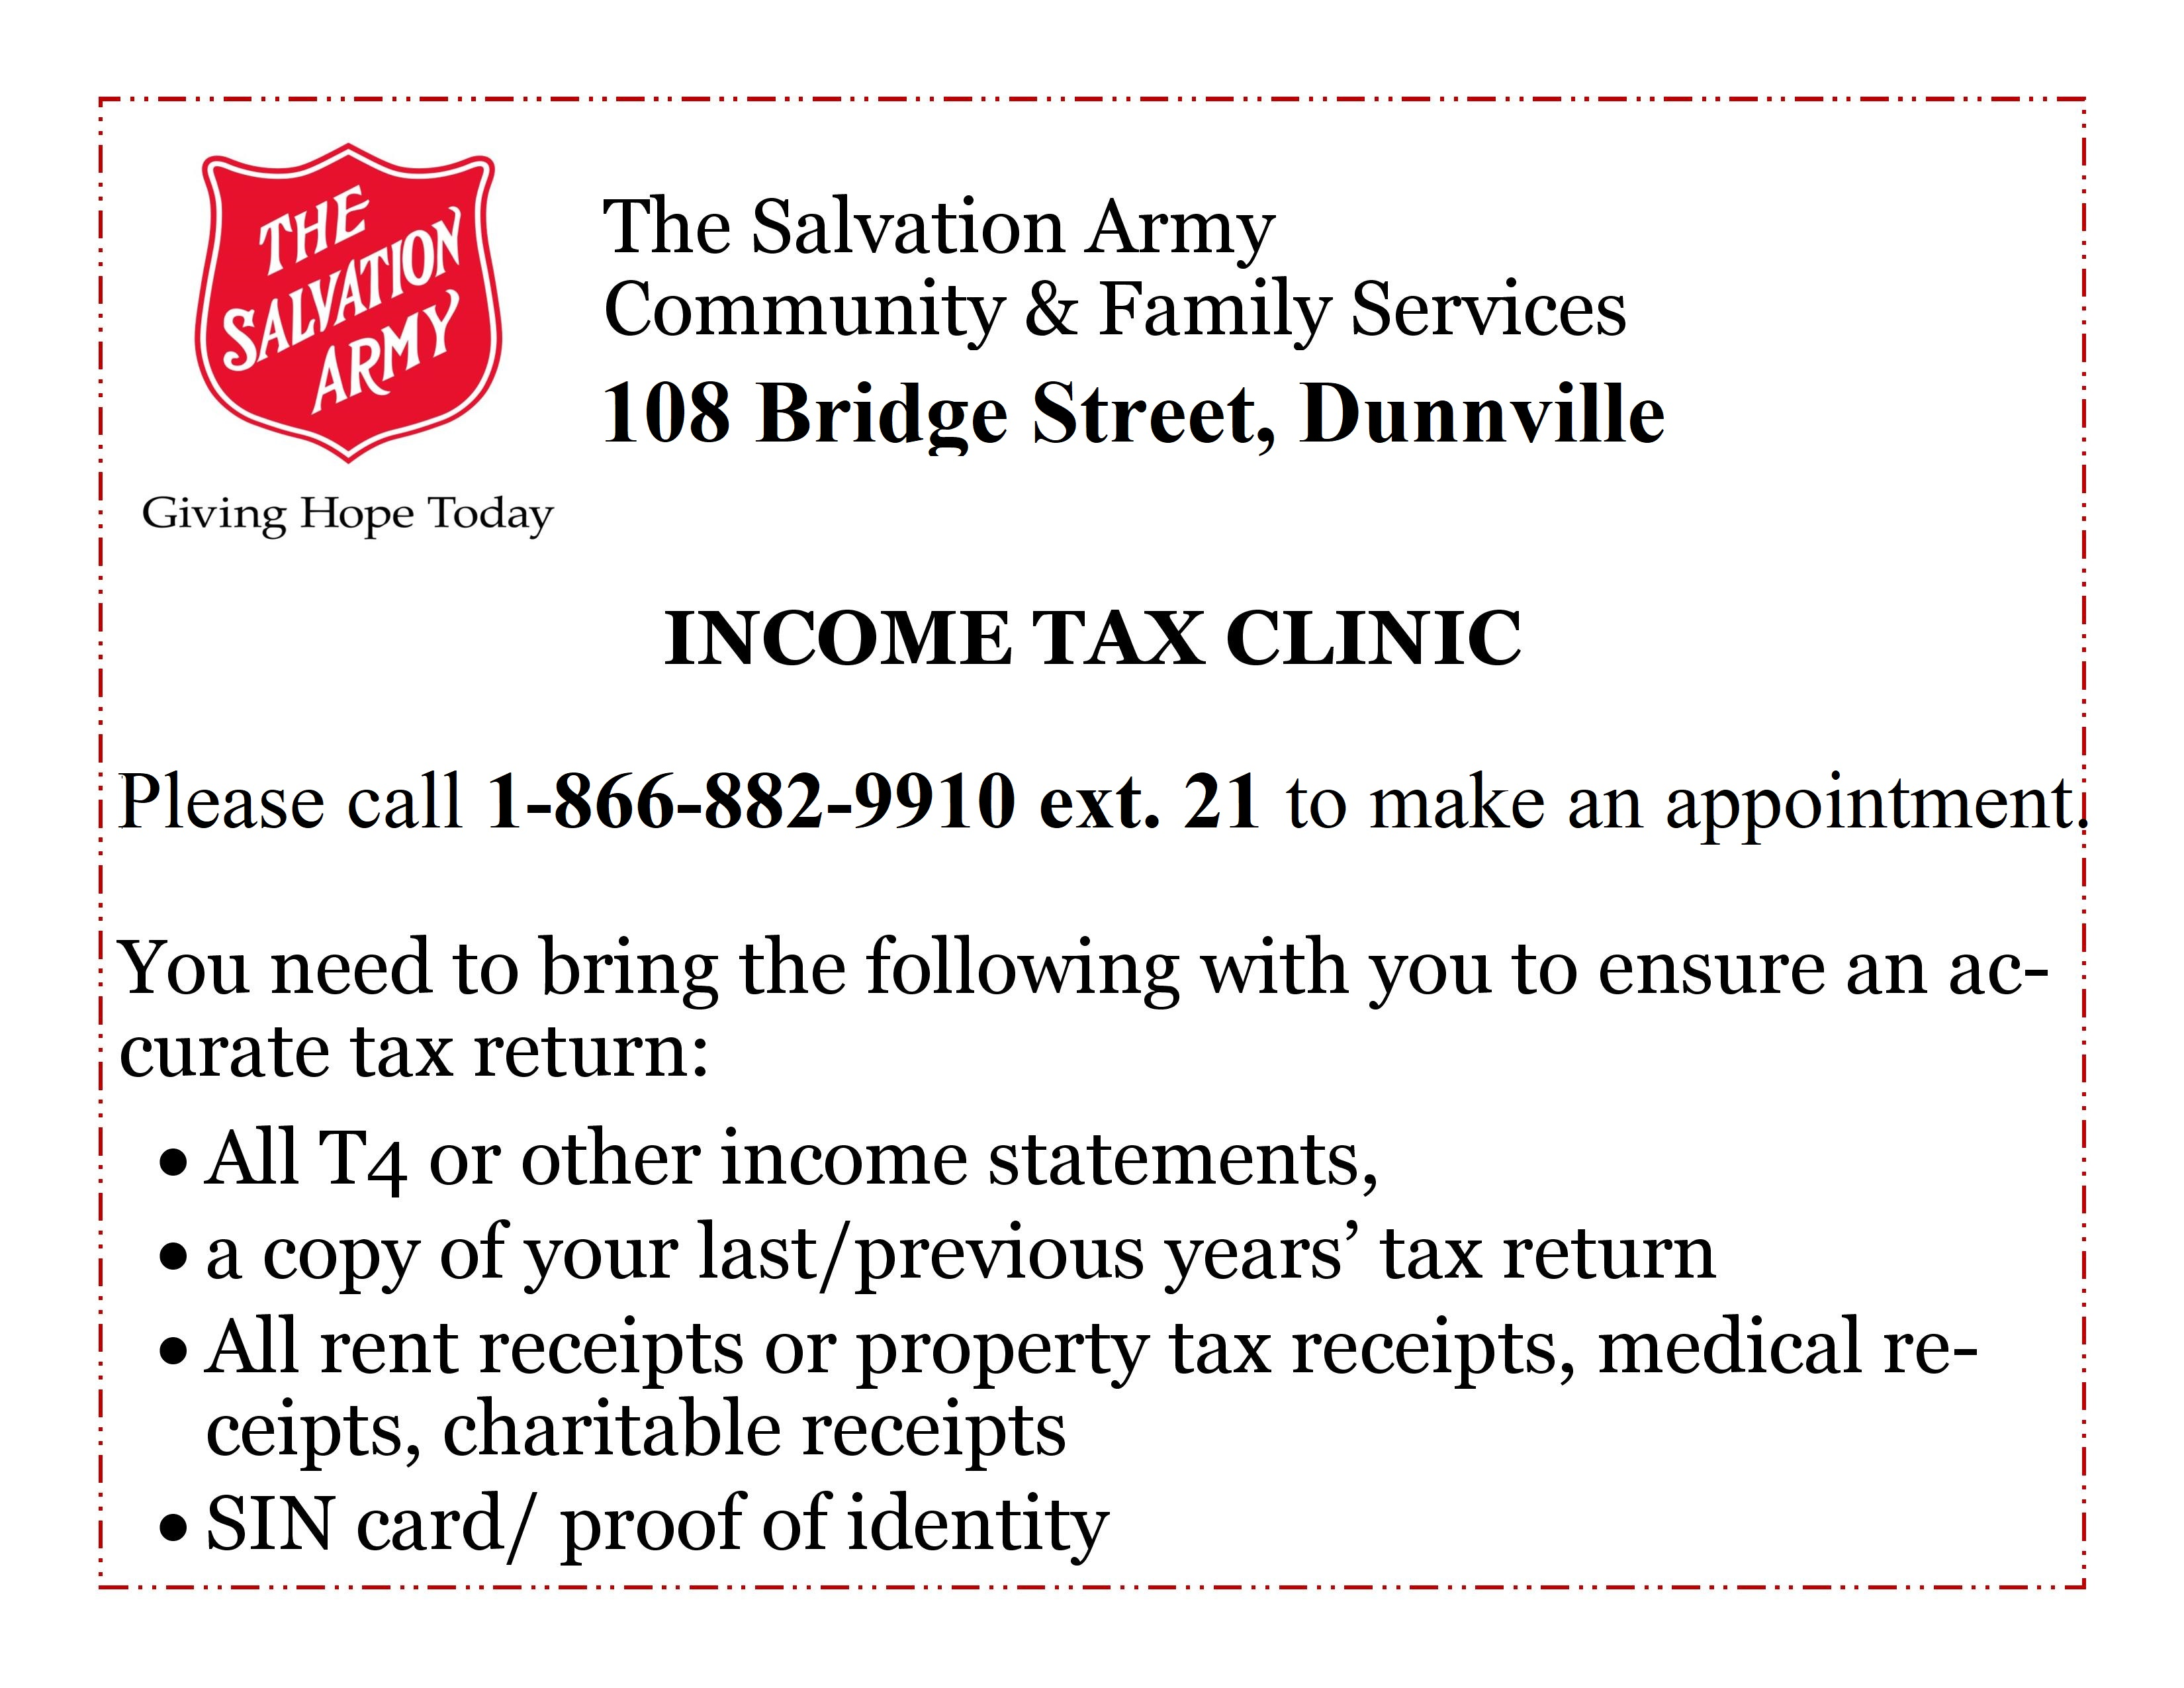 Dunnville Income Tax Clinic